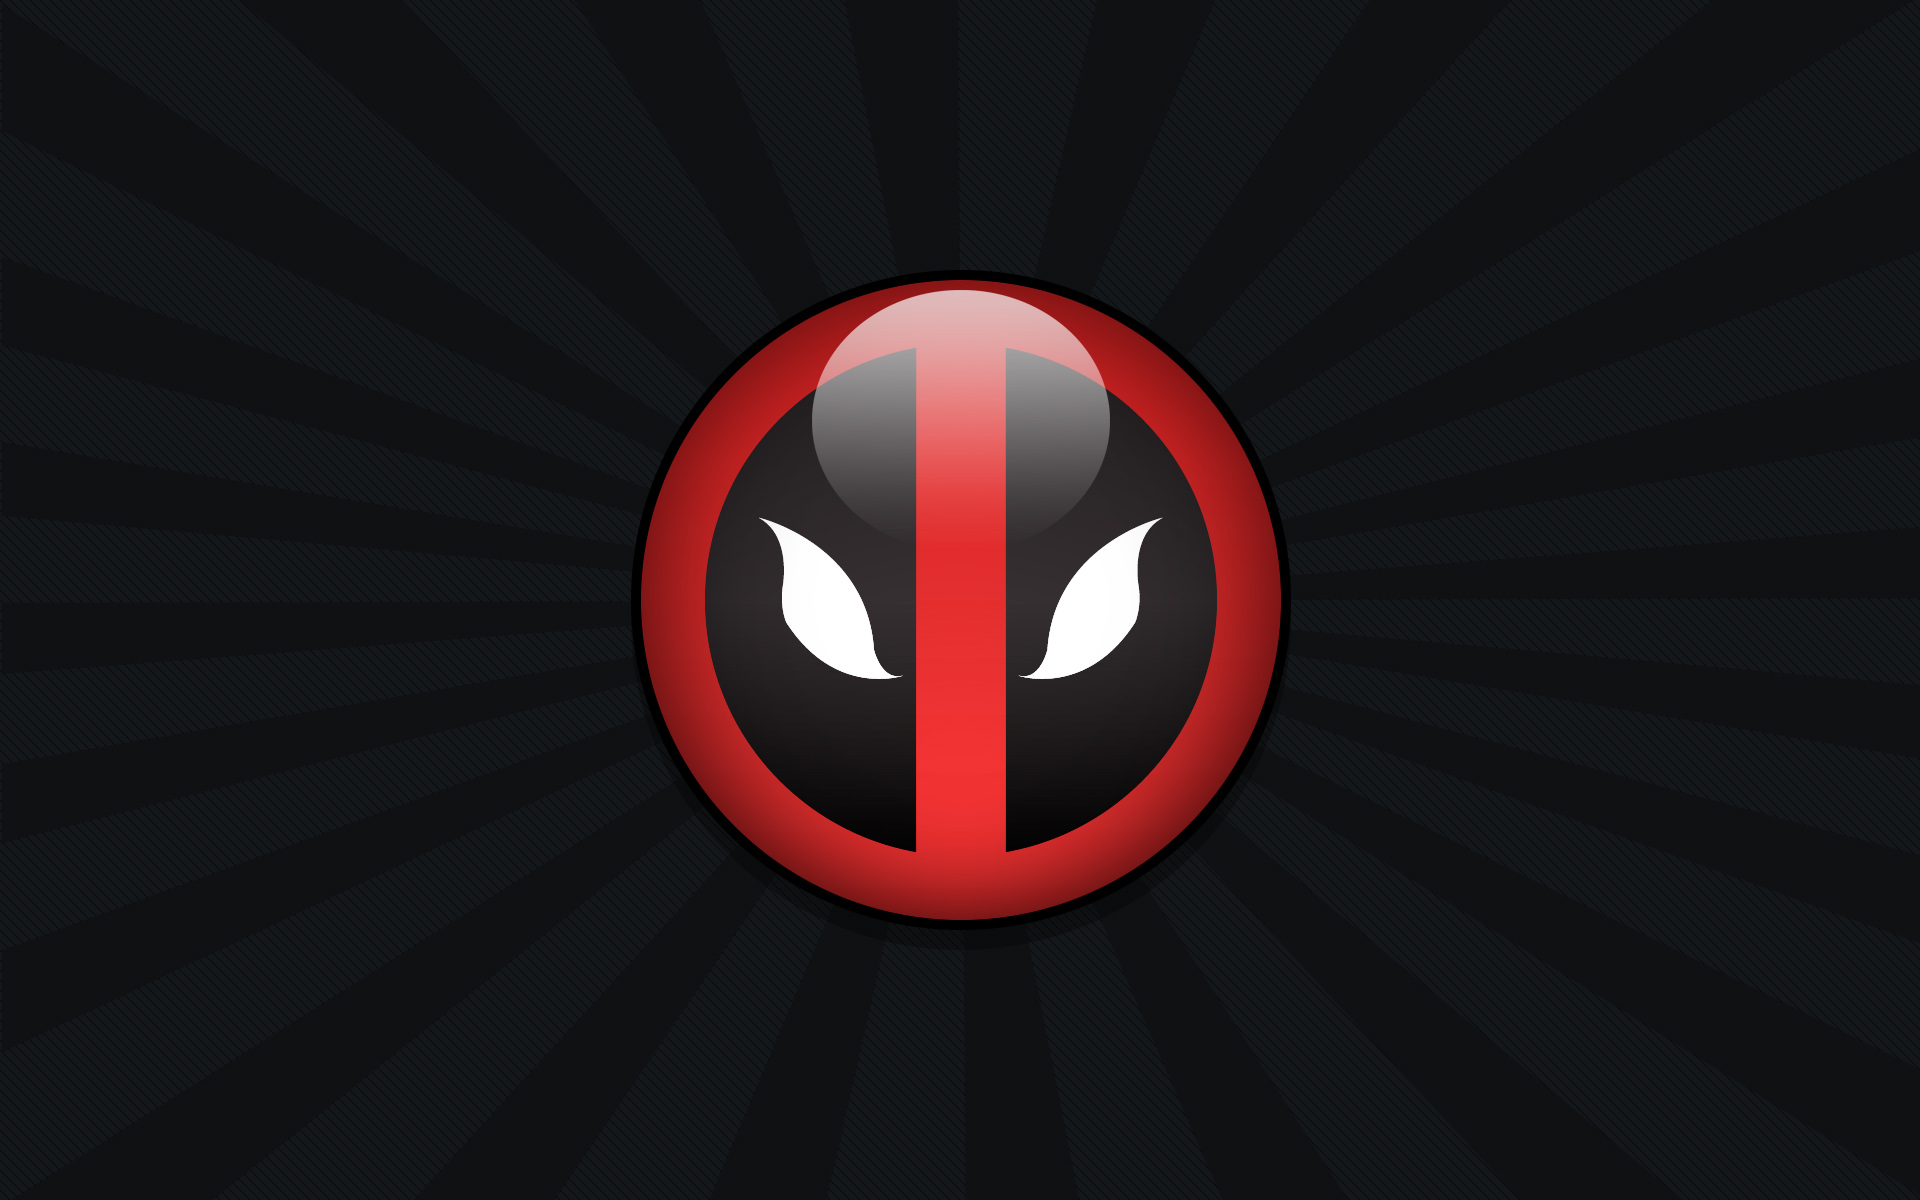 deadpool wallpaper logo art namelessv1 1920x1200